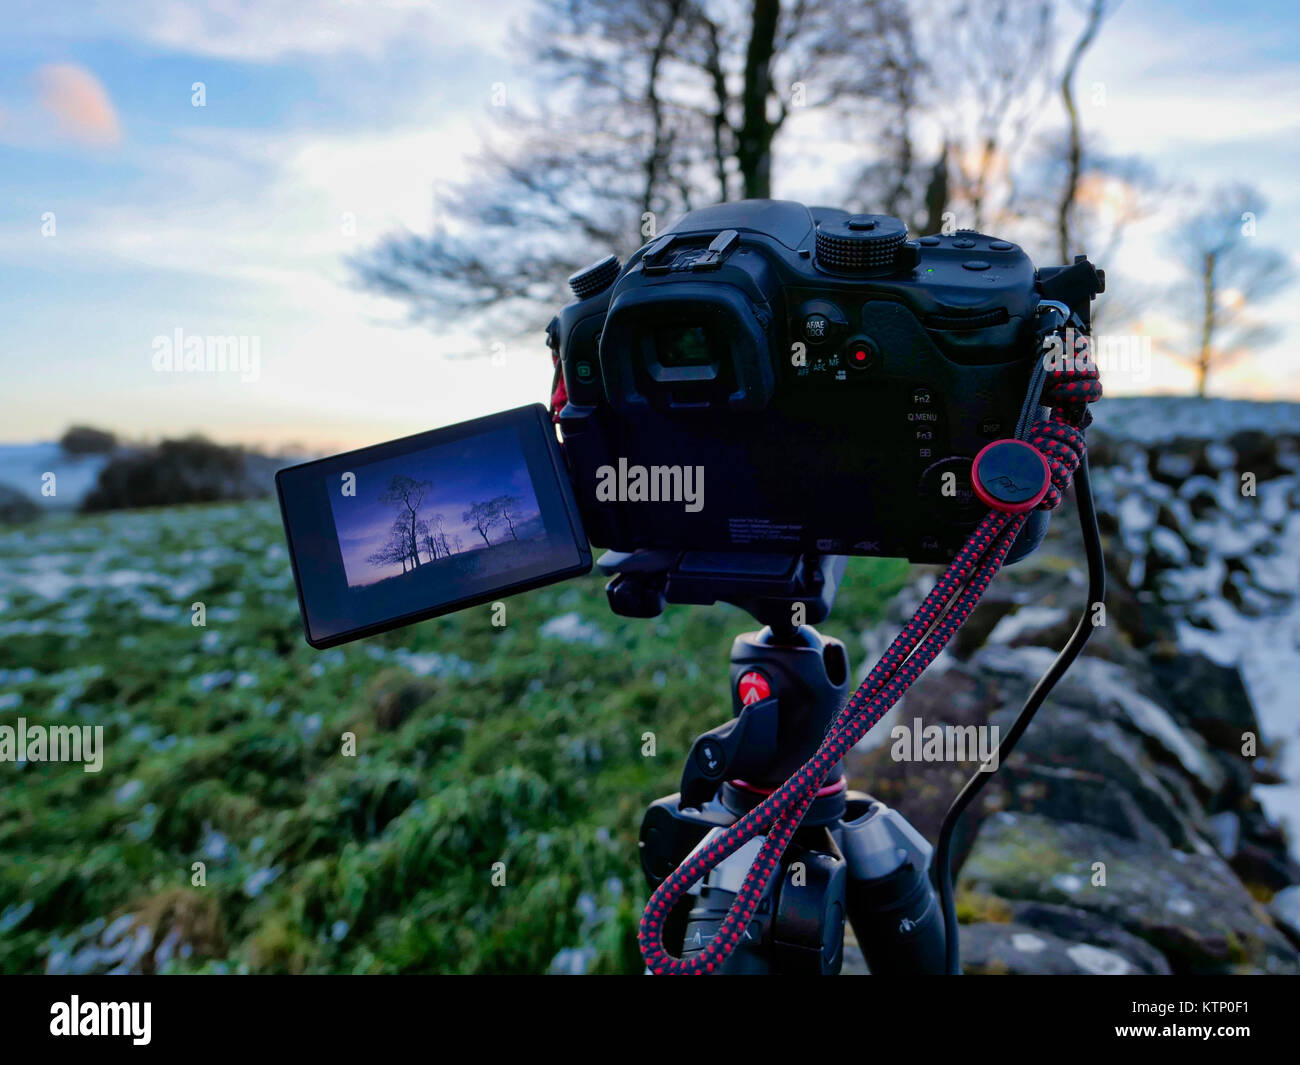 Moat Low, Derbyshire. 28th Dec, 2017. UK Weather: Photographers Camera setup for taking bracketed shots of Moat Stock Photo